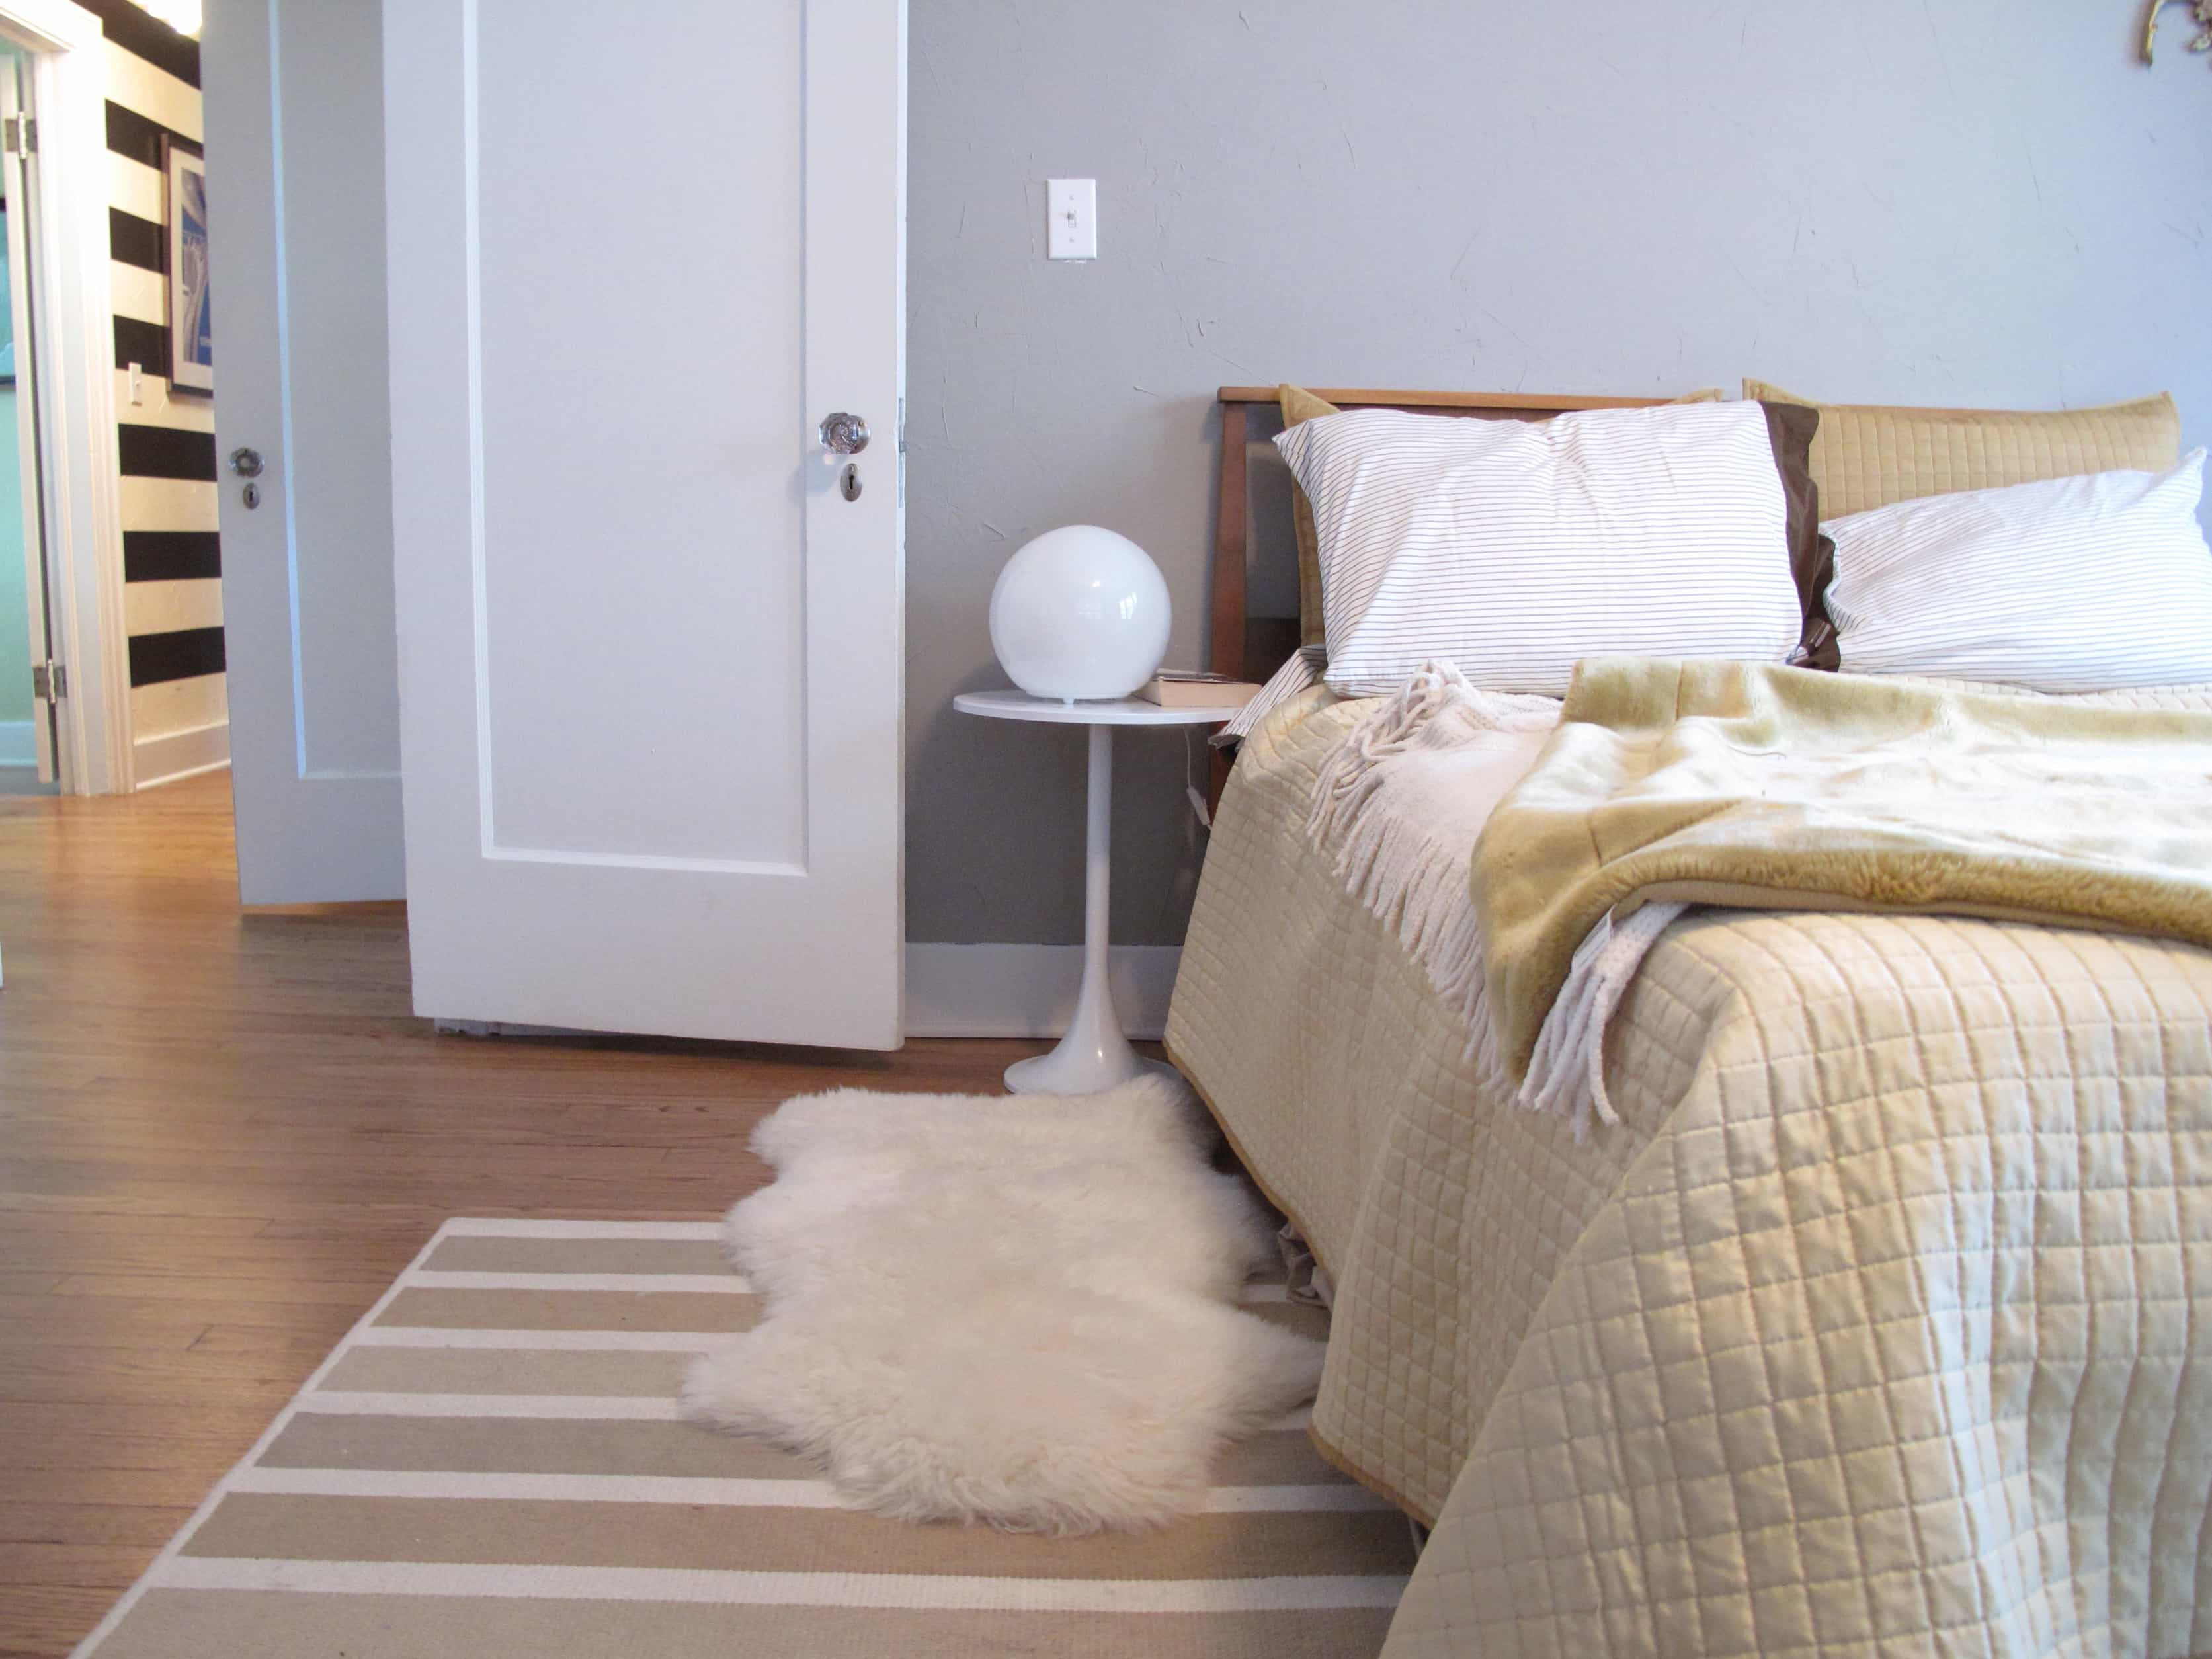 Modern Bedroom With Elegant Layered Rugs (Image 17 of 28)